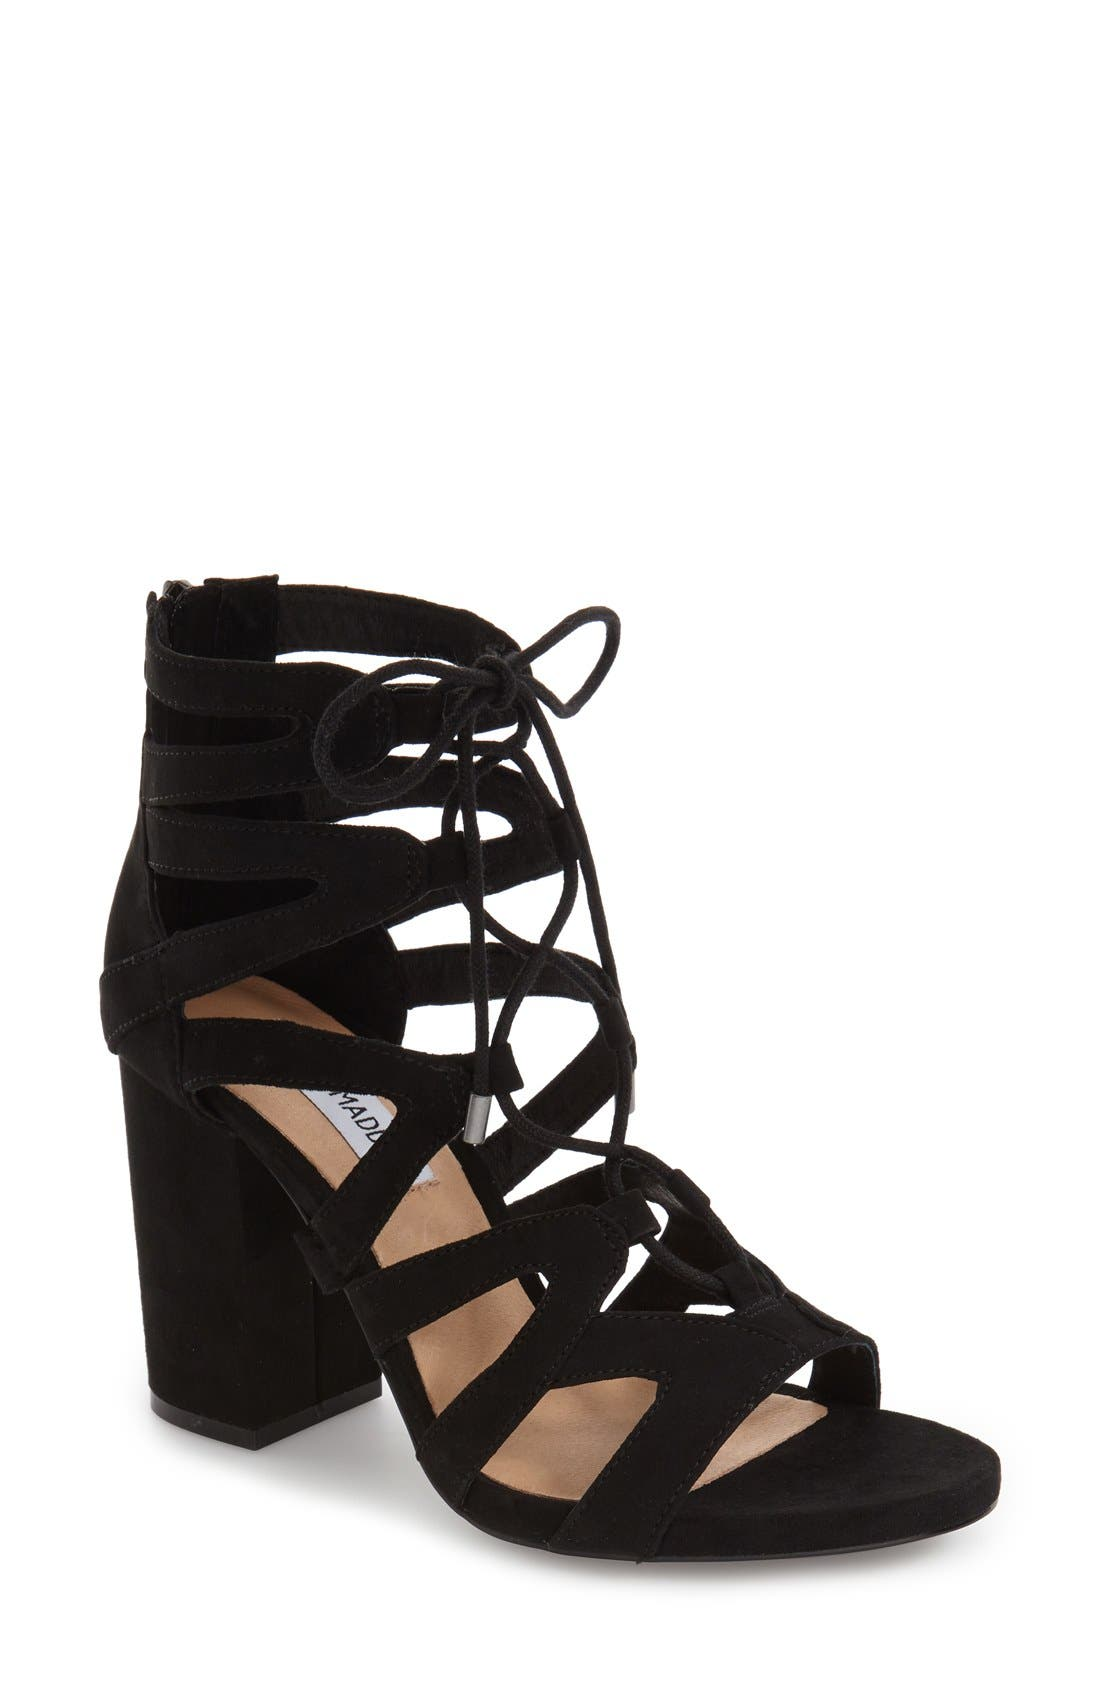 Alternate Image 1 Selected - Steve Madden 'Gal' Strappy Lace-Up Sandal (Women)